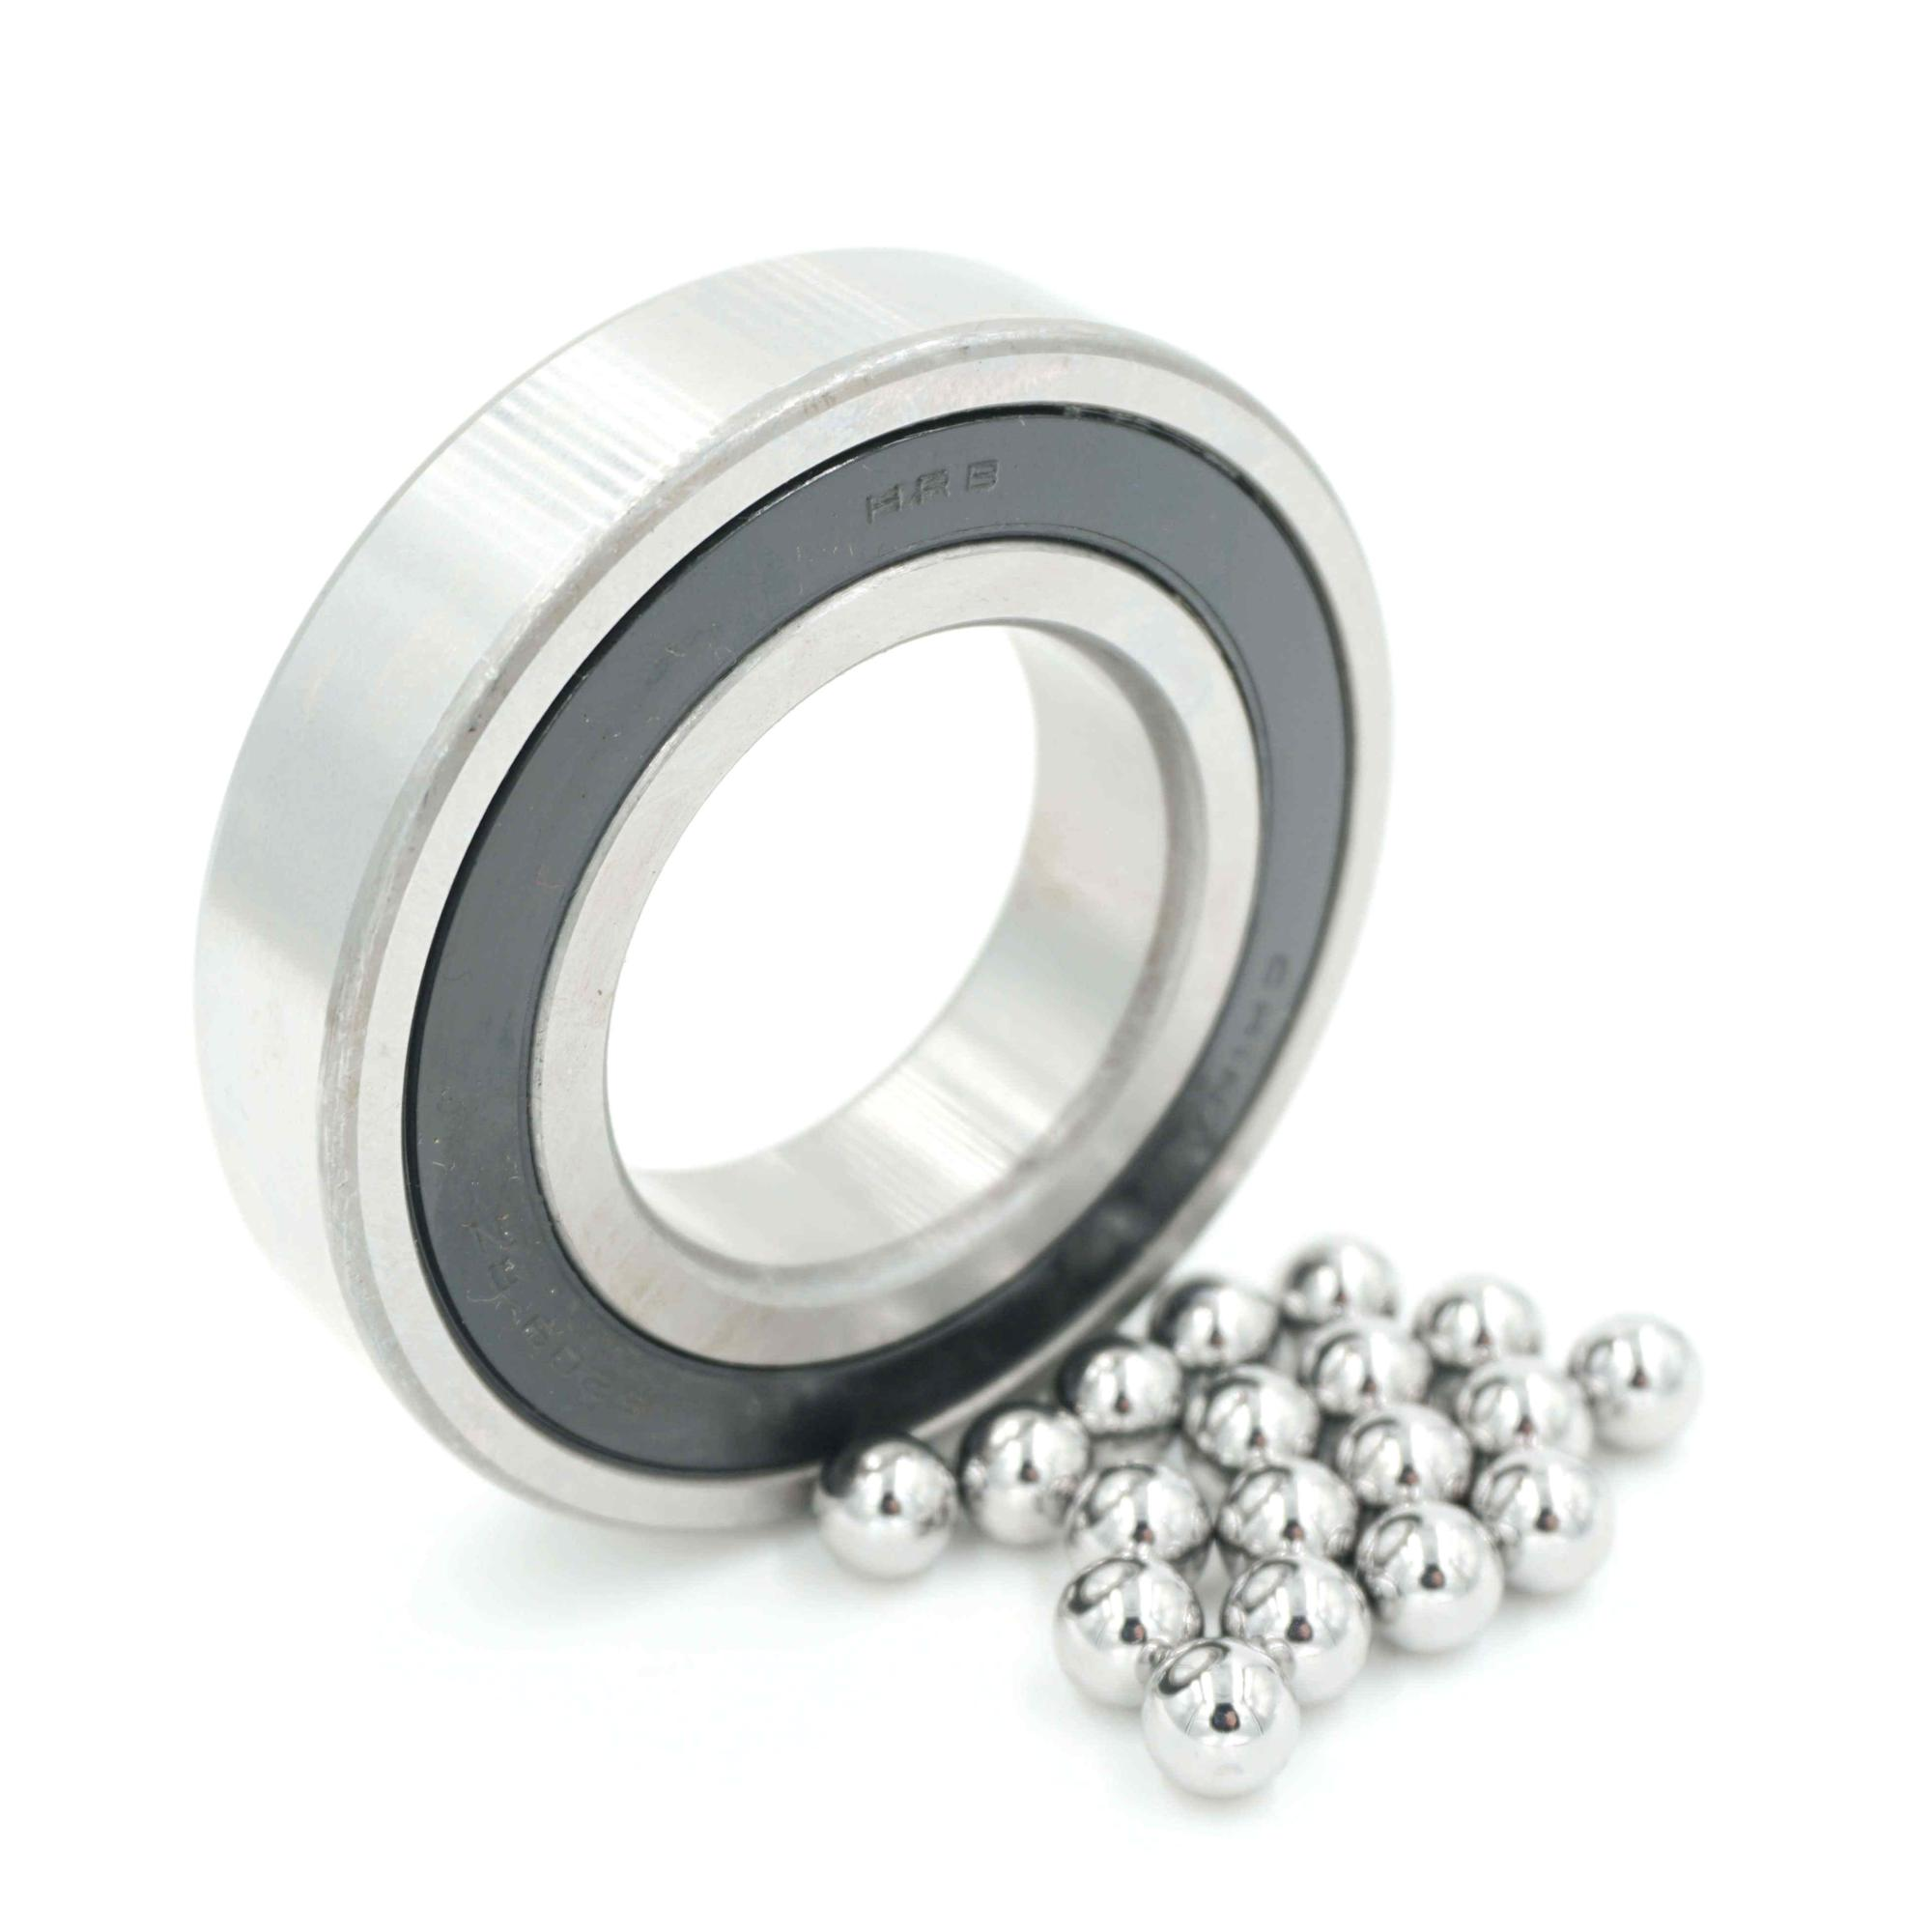 High quality high polished AISI ASTM standard 304 solid stainless steel ball